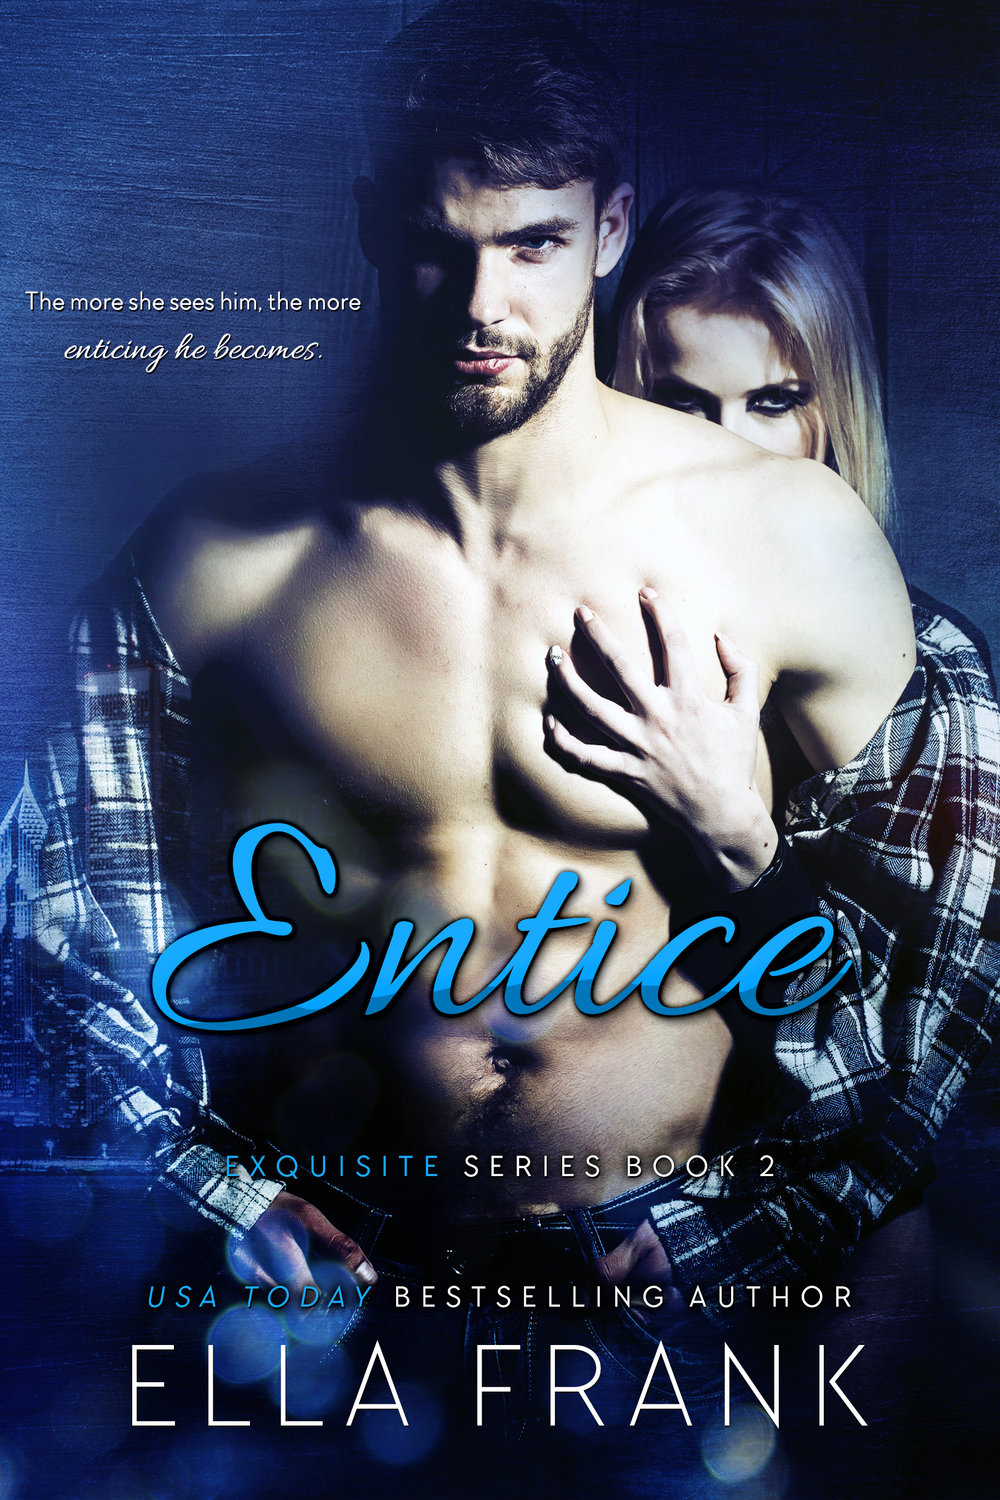 Entice     What if everything you think you want isn't what you actually need...    Dr. Shelly Monroe is a woman who doesn't shy away from going after what she wants, but lately good sex has been hard to find. Shelly's become increasingly frustrated with the men she's been dating and the men she believes are the right choice.    Joshua Daniels is certainly not even close to the right choice. In fact he is exactly the wrong choice. For one thing, he's Mason Langley's best friend and best man. Second he's too much of a risky complication for Shelly to even consider.    Then why can't she stop thinking about how delicious he looked that first night she met him at Exquisite? Why is it so imperative to keep her lusty desire for a man that doesn't meet her preconceived mold hidden from Lena and Mason, her trusted friends?    It seems unreasonable that being with a man completely wrong in theory could somehow feel so right. Then why is it the more she sees him the more enticing he becomes?     AMAZON US  ~ Add to  GoodReads